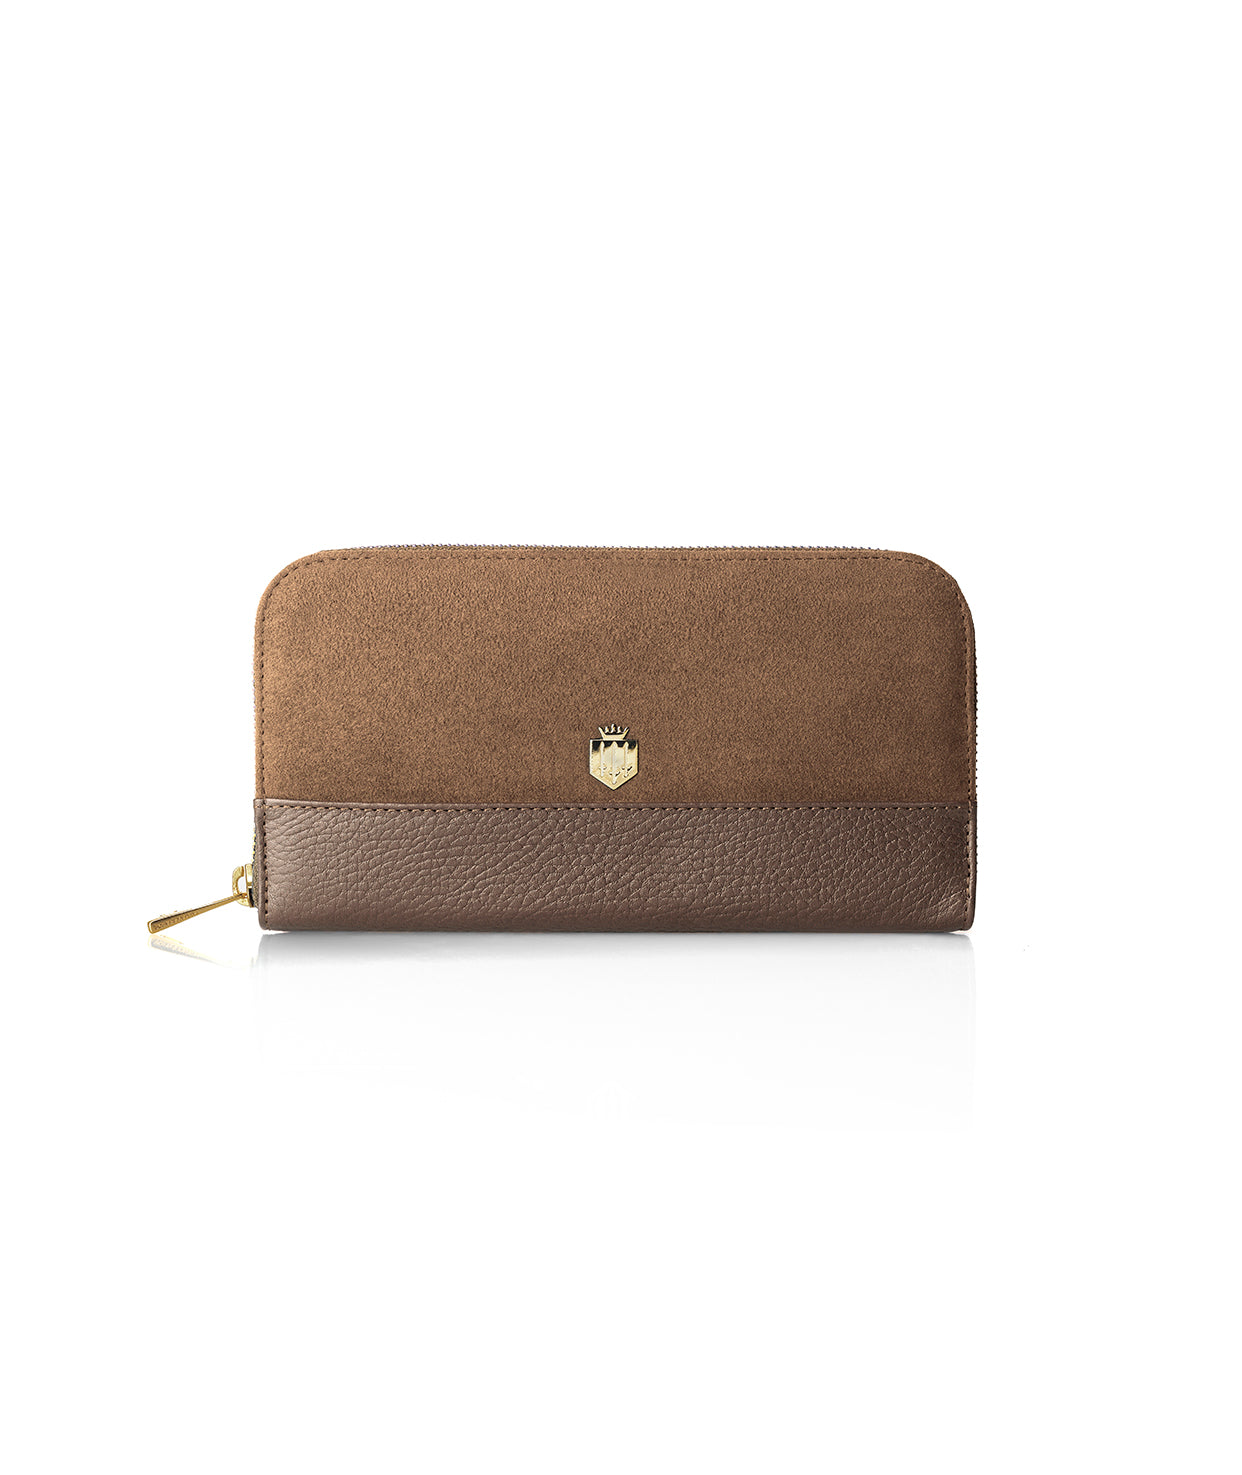 Fairfax and Favor Salisbury Purse for Ladies in Tan